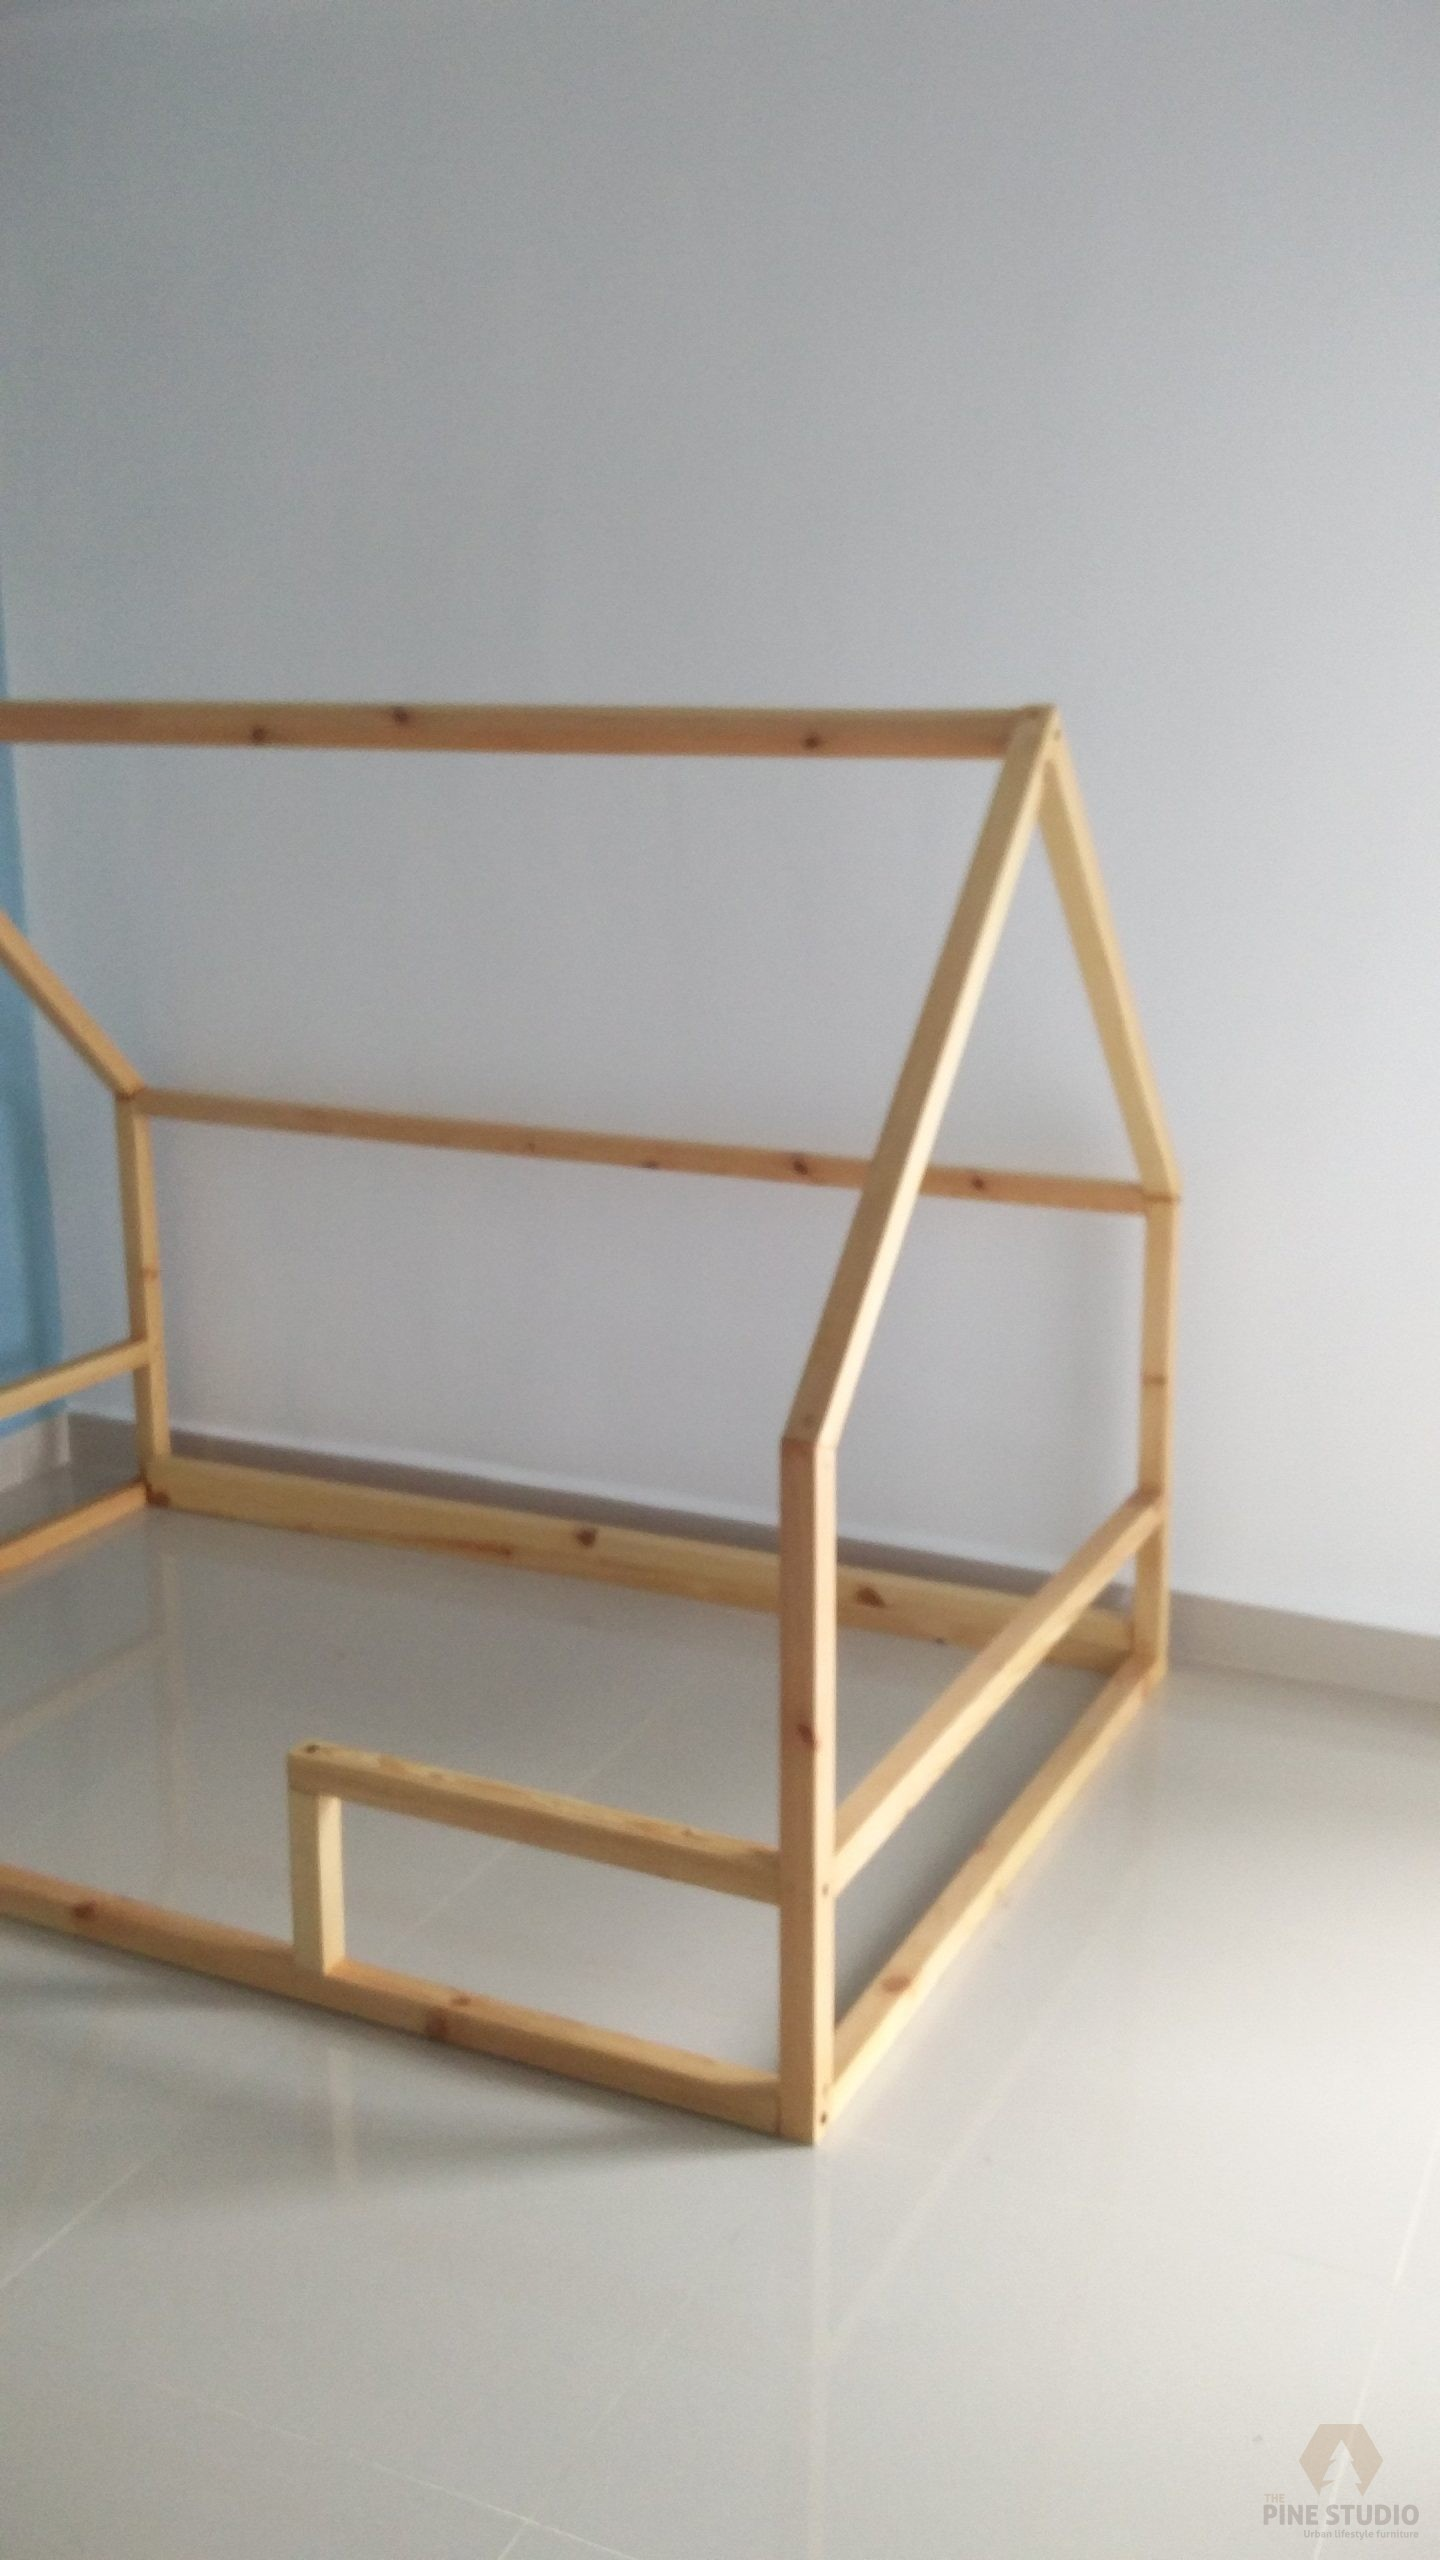 Kids Bed Frame The Pine Studio